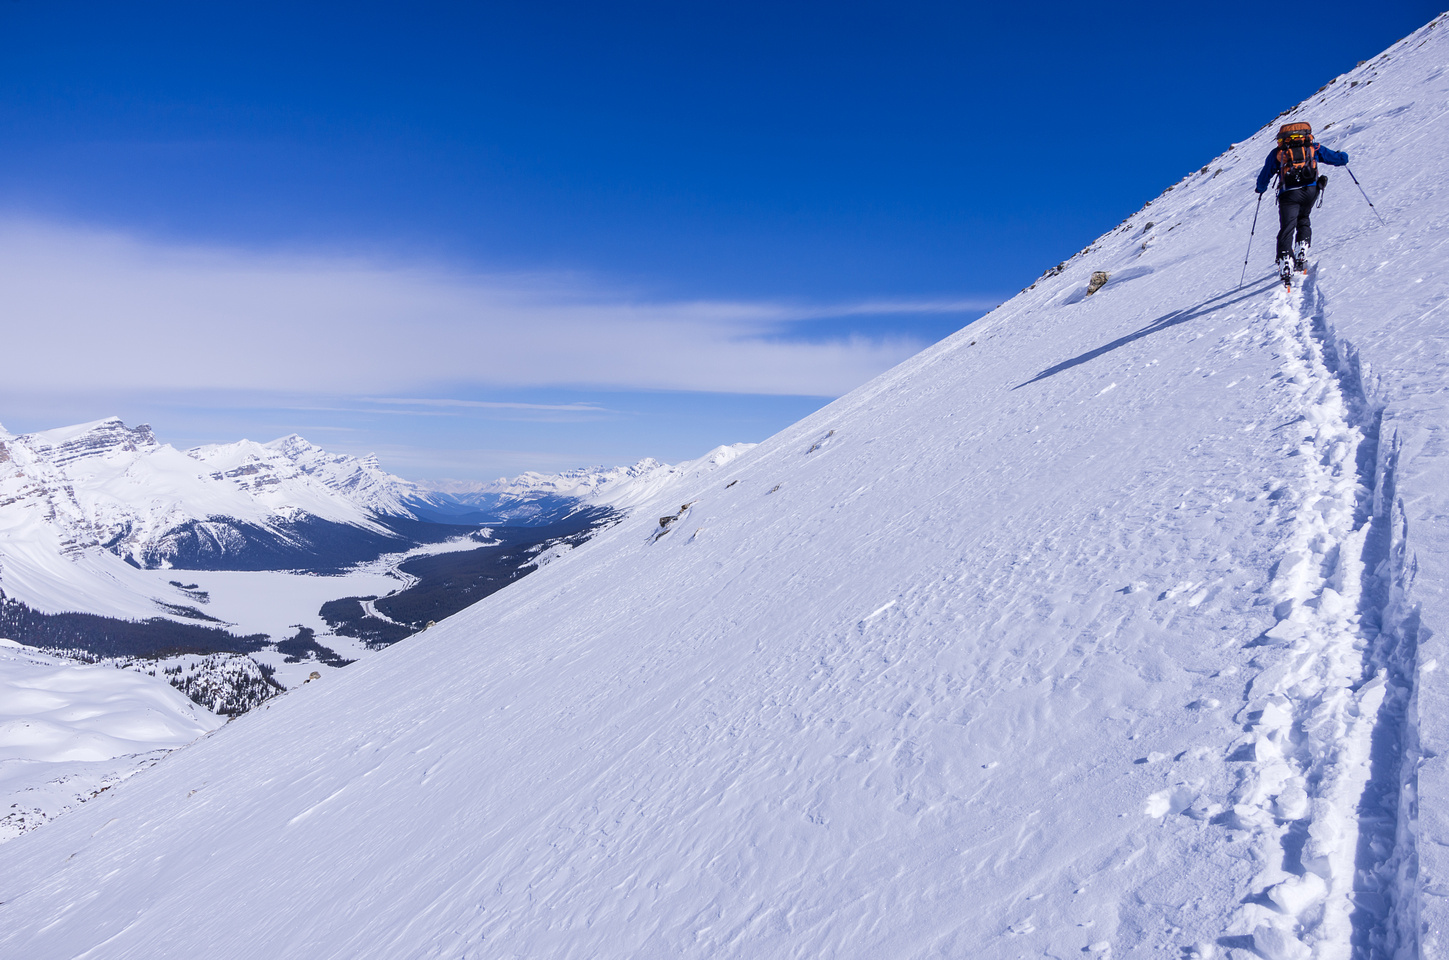 The going gets tougher as we get higher, thanks to a thin snow pack and crusty conditions.